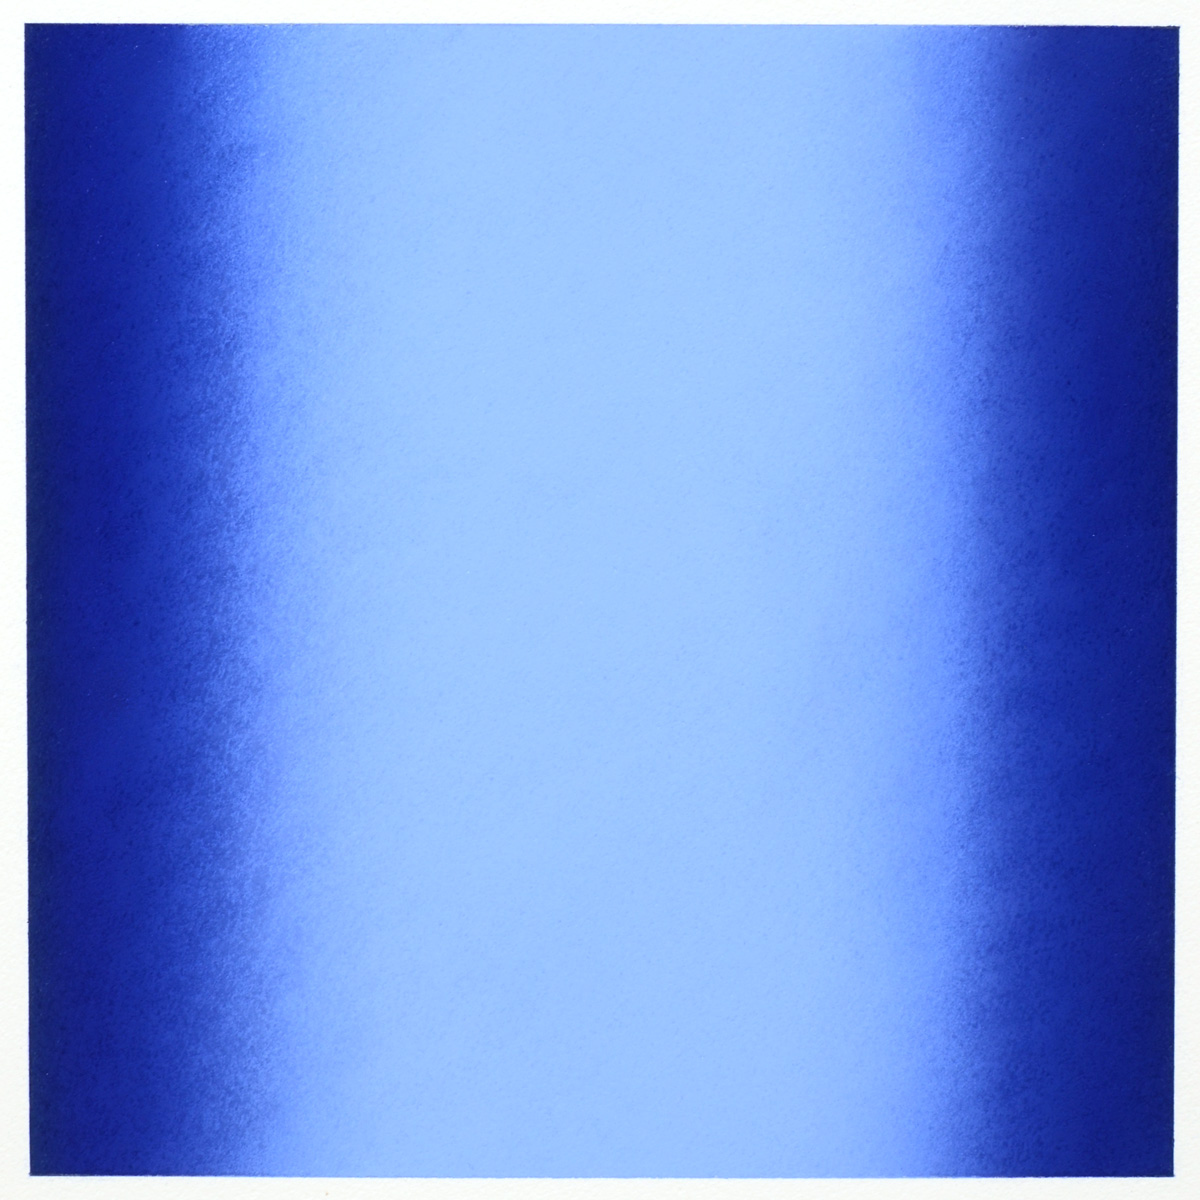 Blue (Light), Primary Red Blue Series, 2011, pastel on paper, image: 14 x 14 in. (36 x 36 cm.), sheet: 30 x 22 in. (76 x 56 cm.)